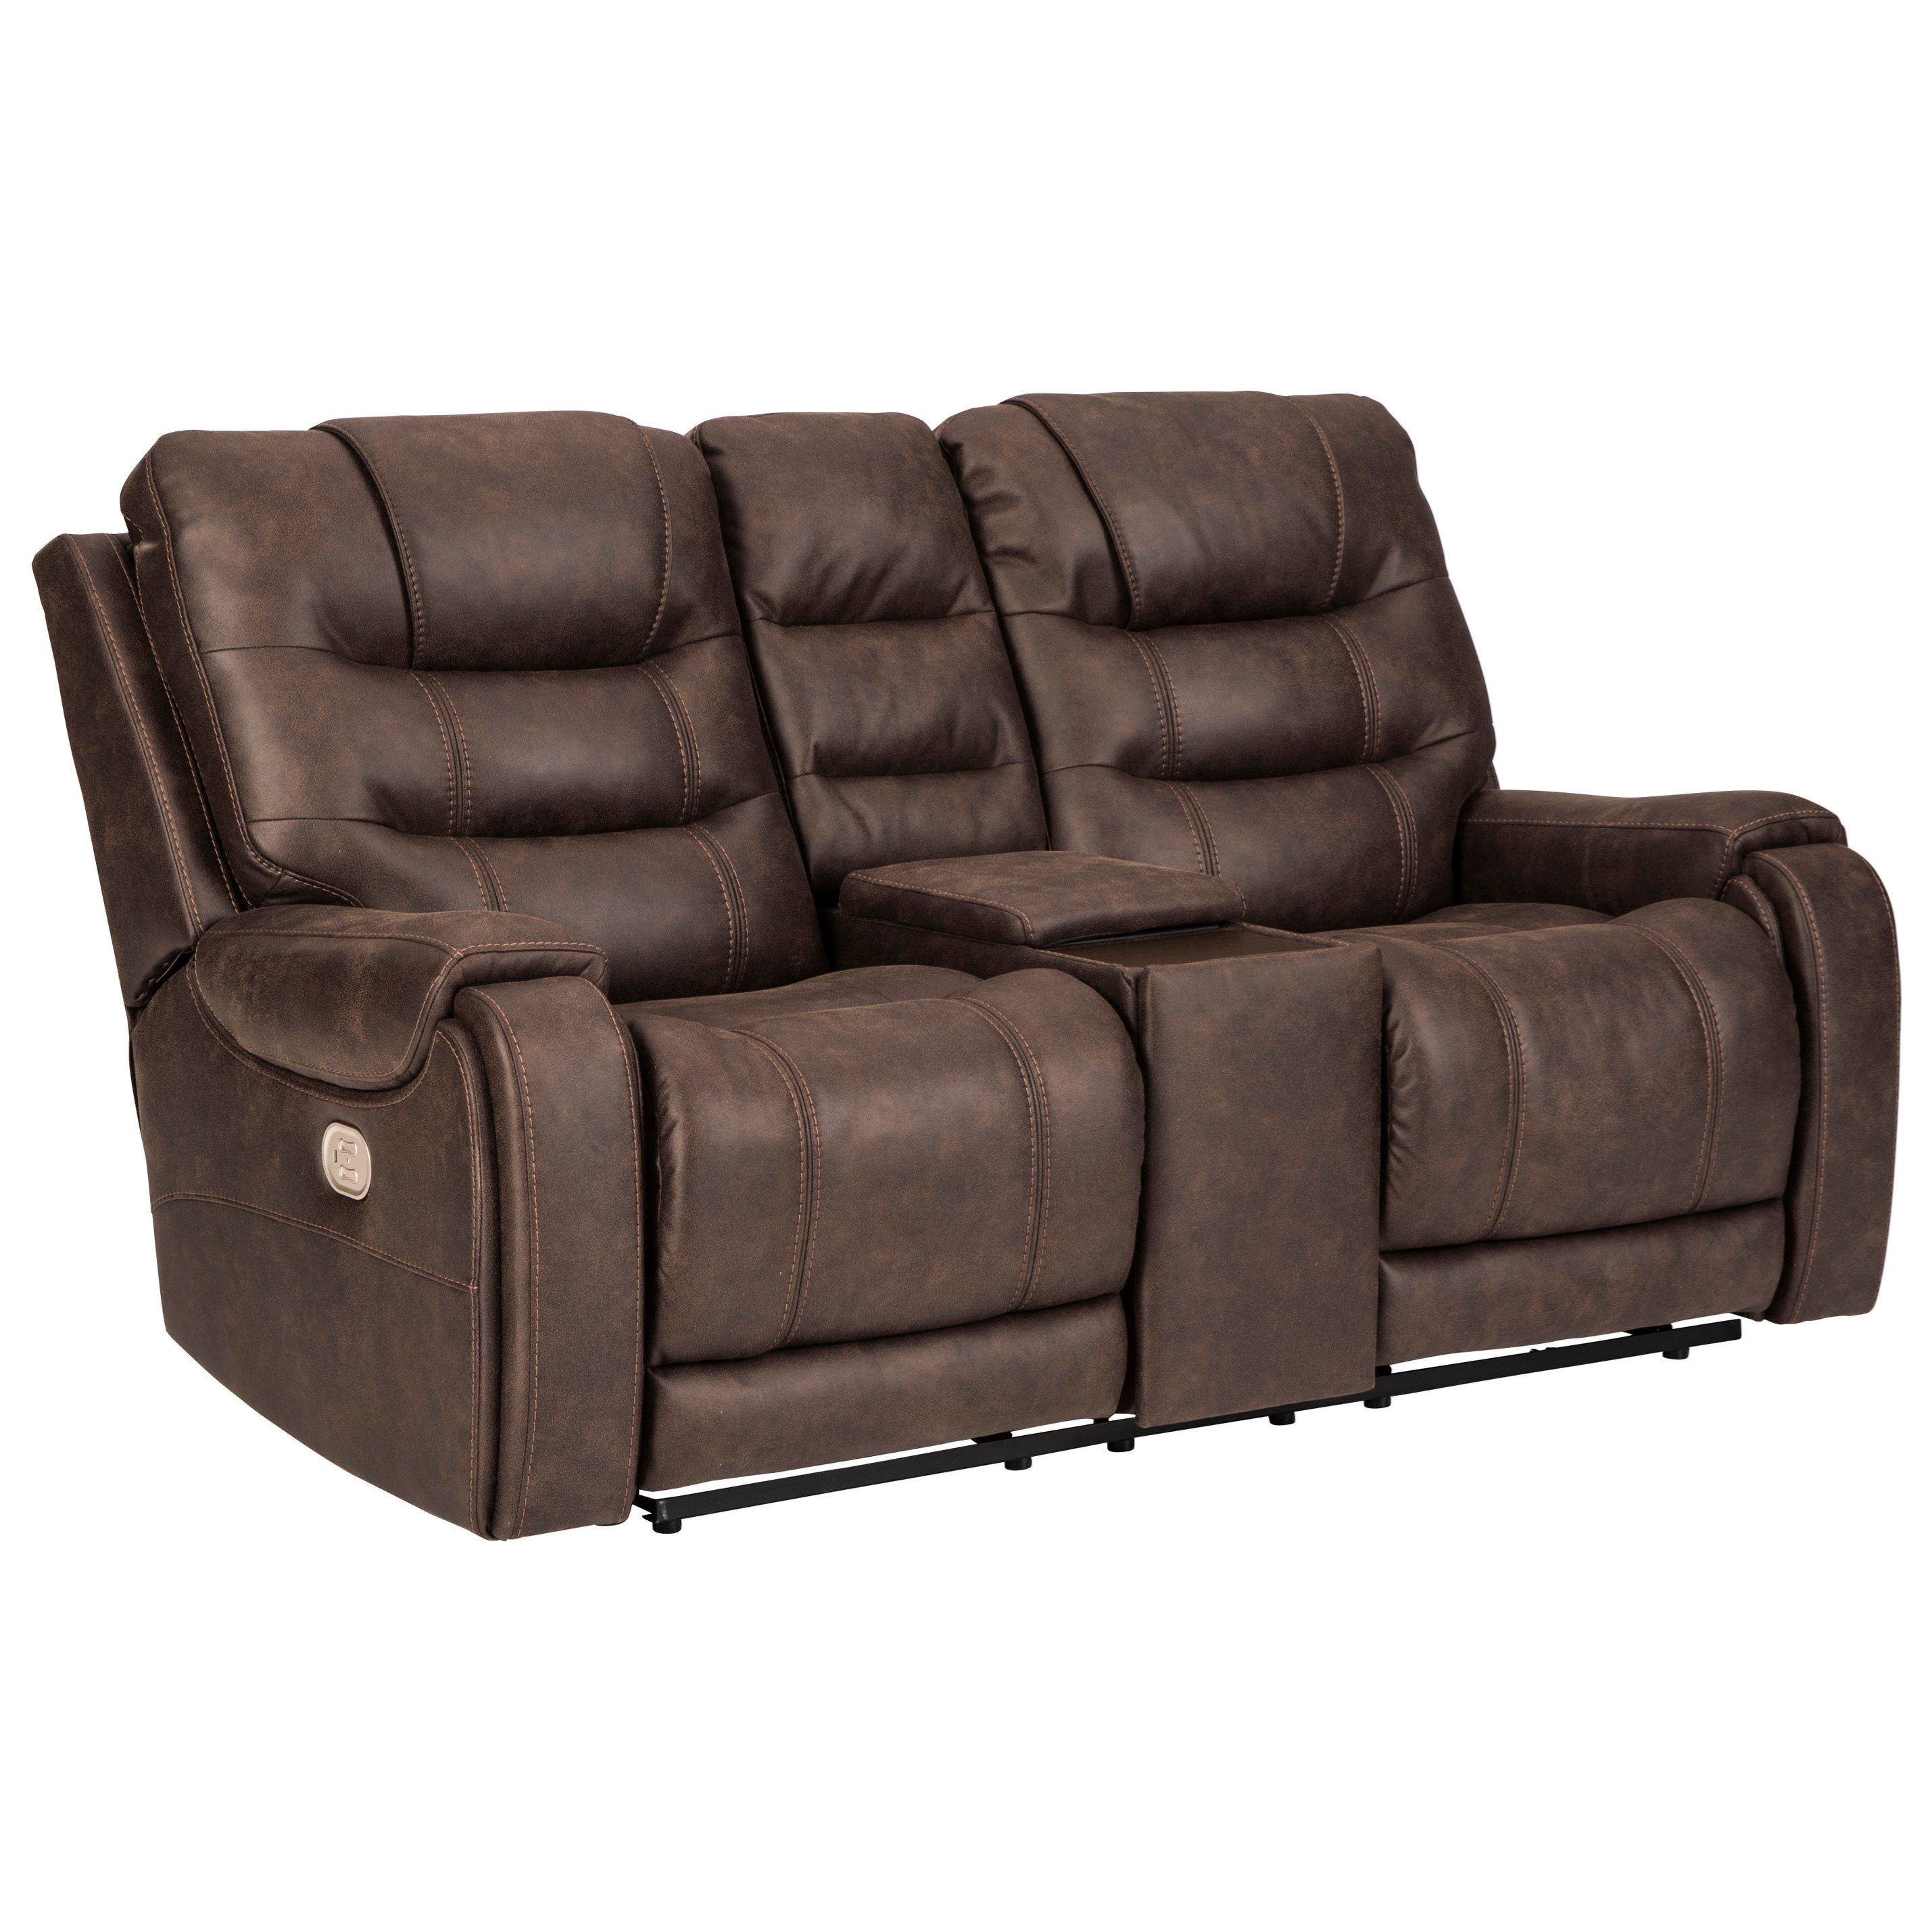 Yacolt Power Reclining Console Loveseat by Signature Design by Ashley at Beck's Furniture